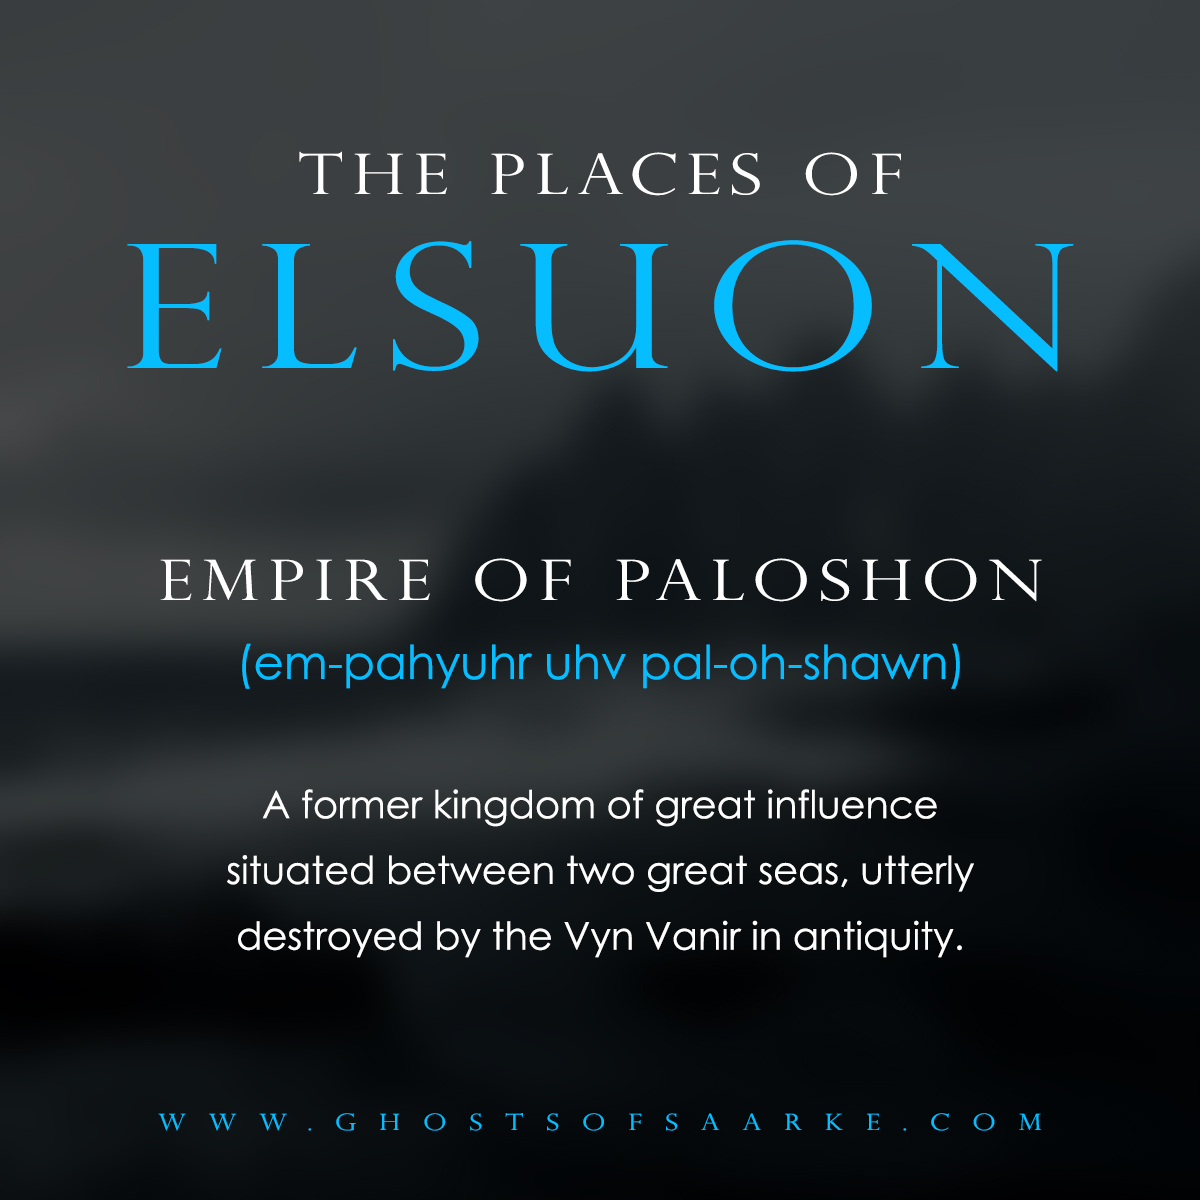 Places - Empire of Paloshon